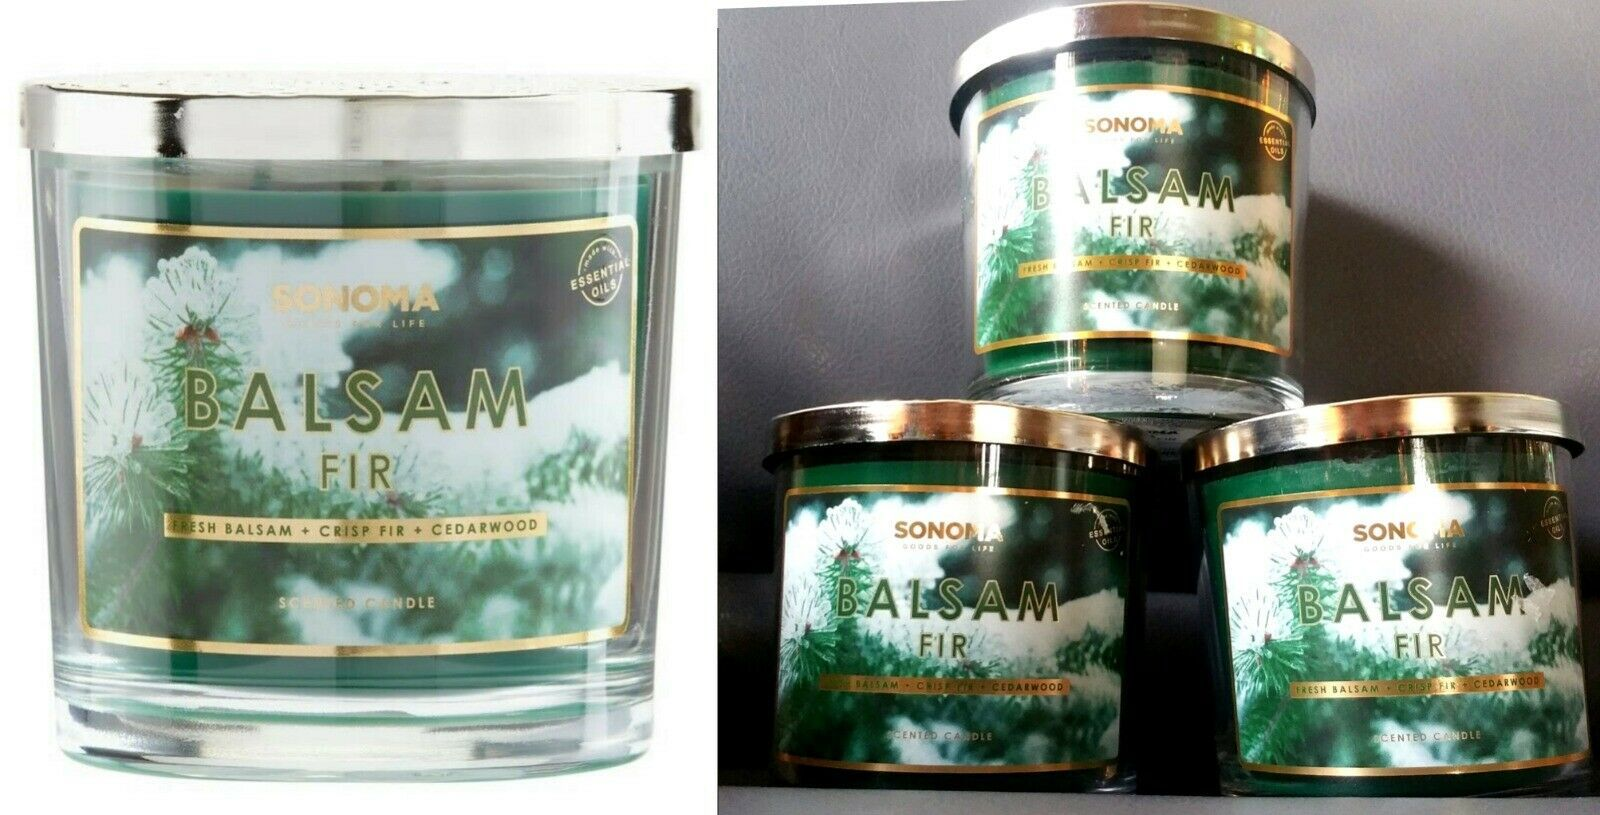 Primary image for $60 Balsam Fir Sonoma Jar Candle w/Lid 3-Wick Pine Tree Scent-LOT of Three-3